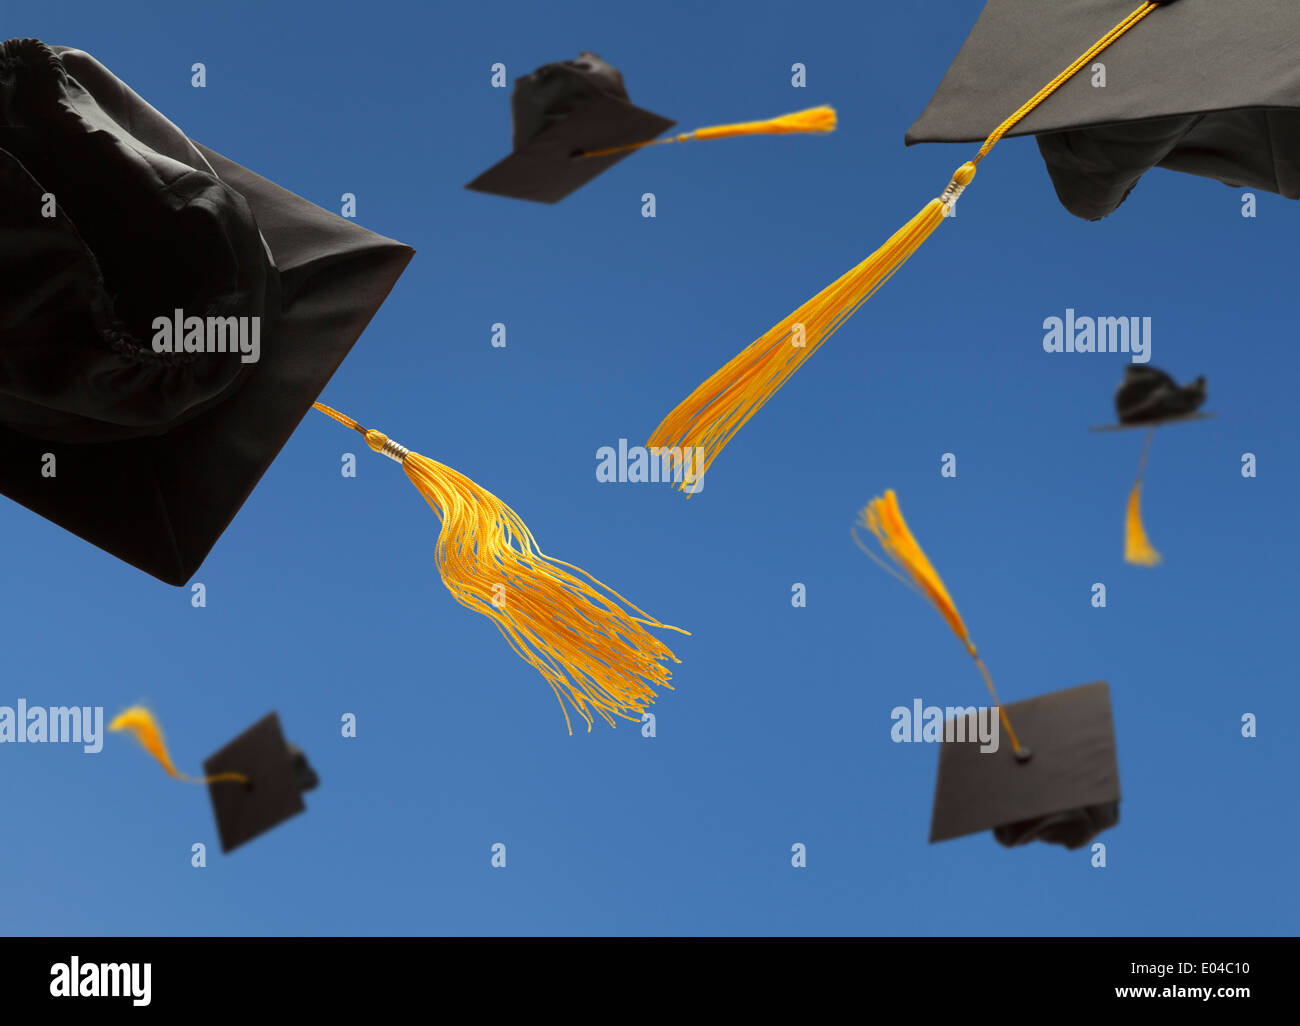 Black Graduation Hat Toss into the Air with Yellow Tassels - Stock Image